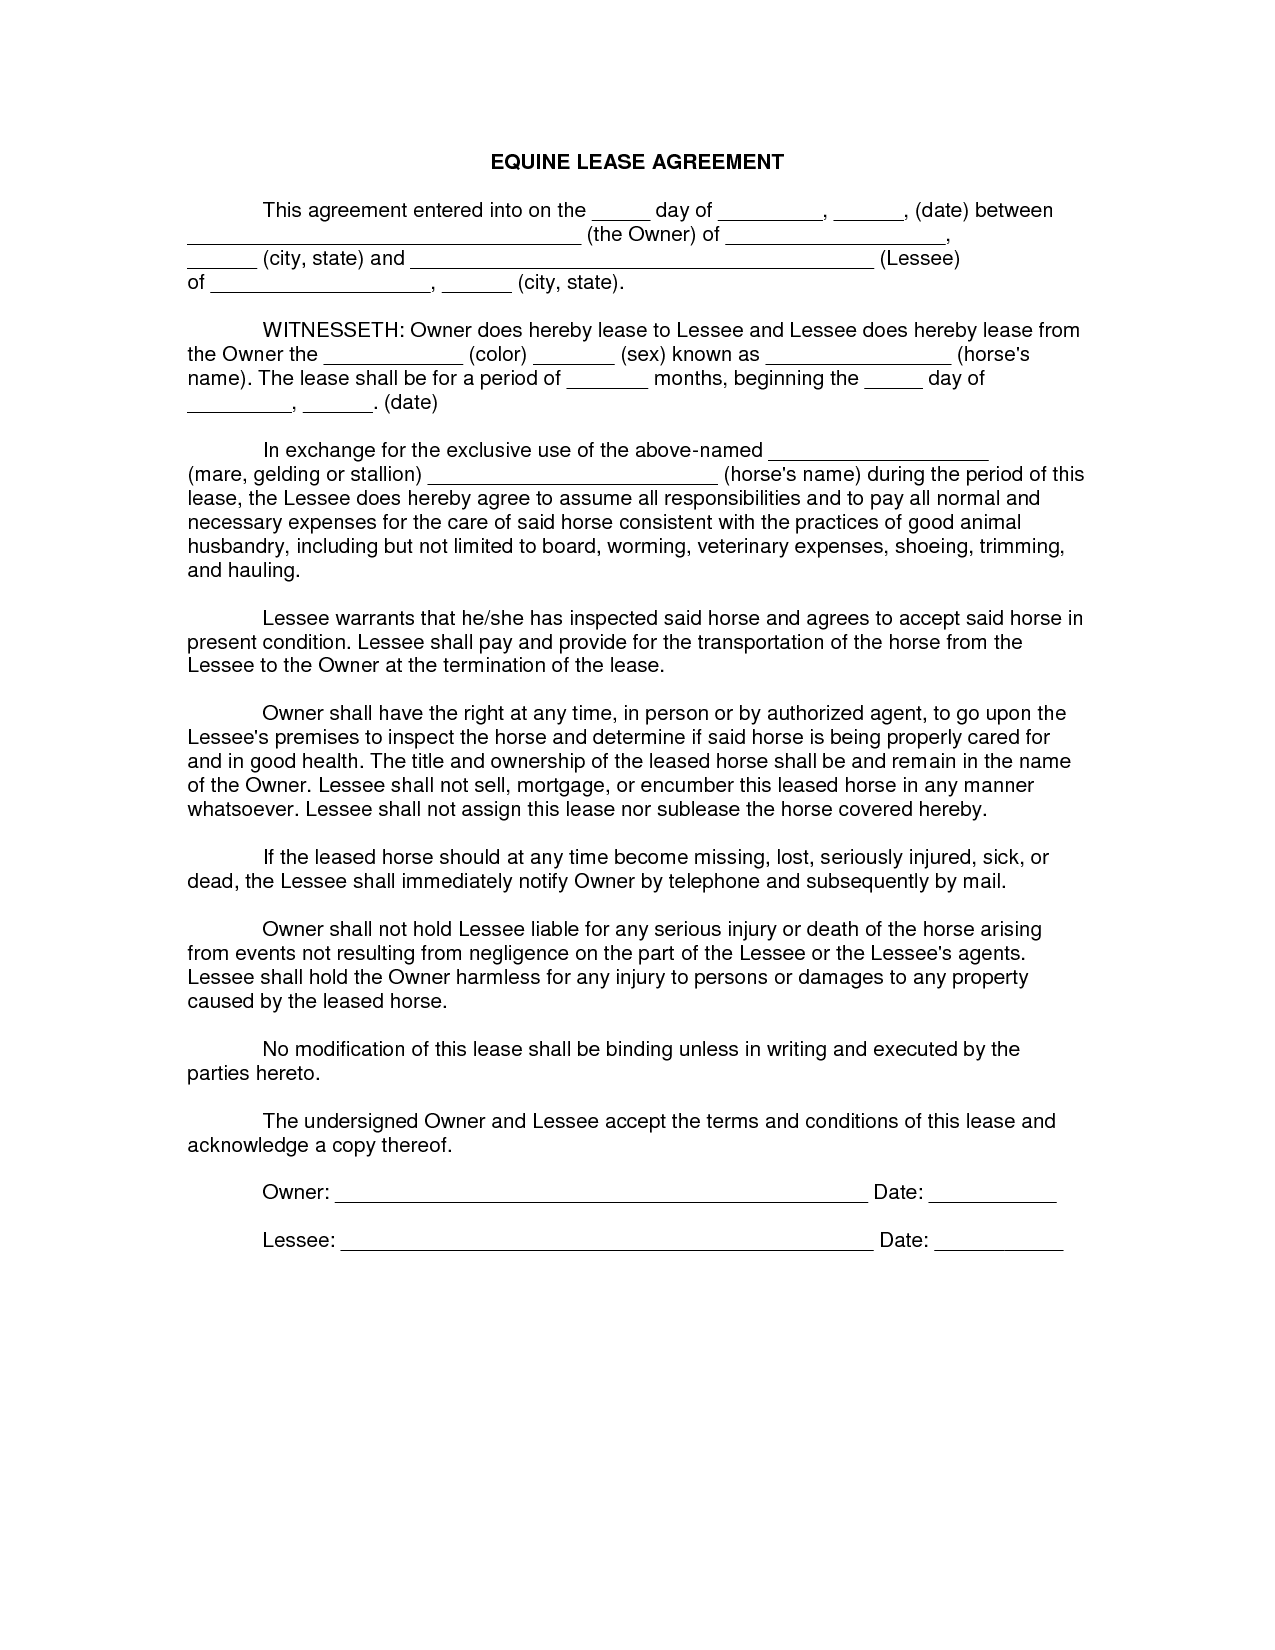 Lease agreement contract by bgf31721 sublease agreement contract lease agreement contract by bgf31721 sublease agreement contract platinumwayz